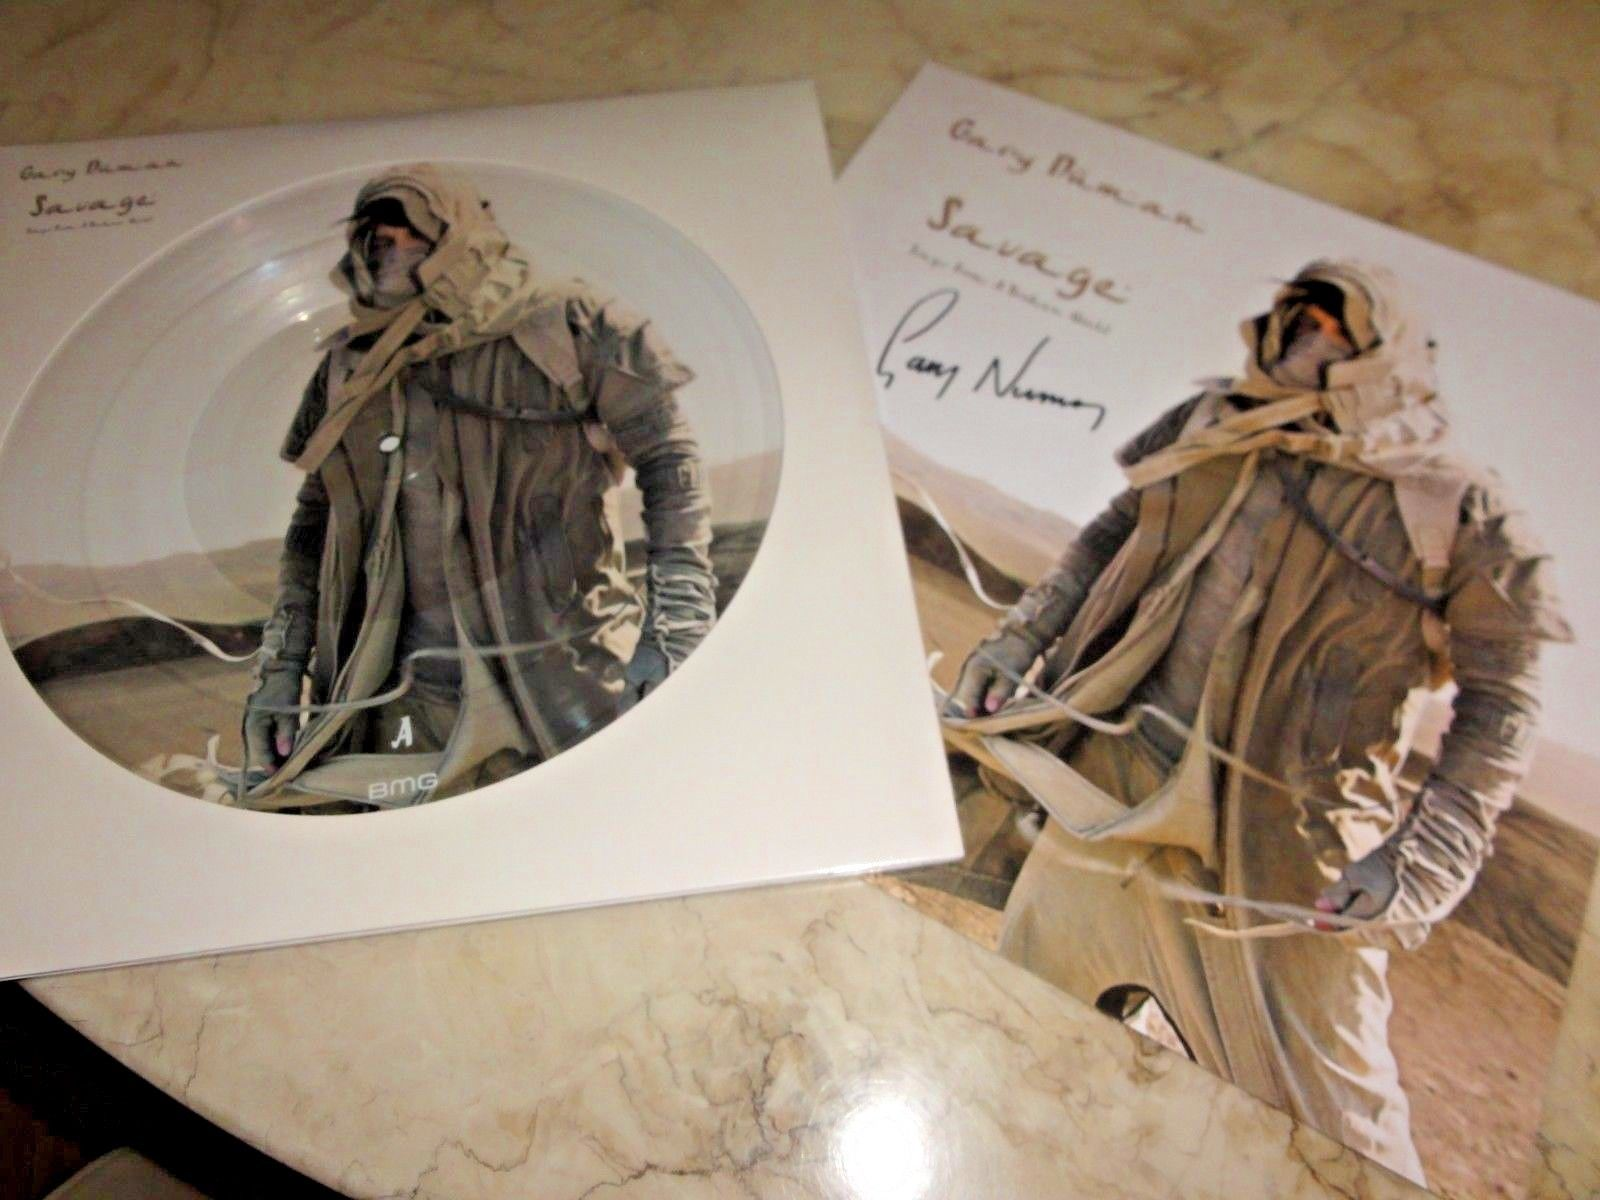 GARY NUMAN SAVAGE PICTURE DISC 2LP WITH SIGNED ARTWORK PRINT 500 ONLY SEALED